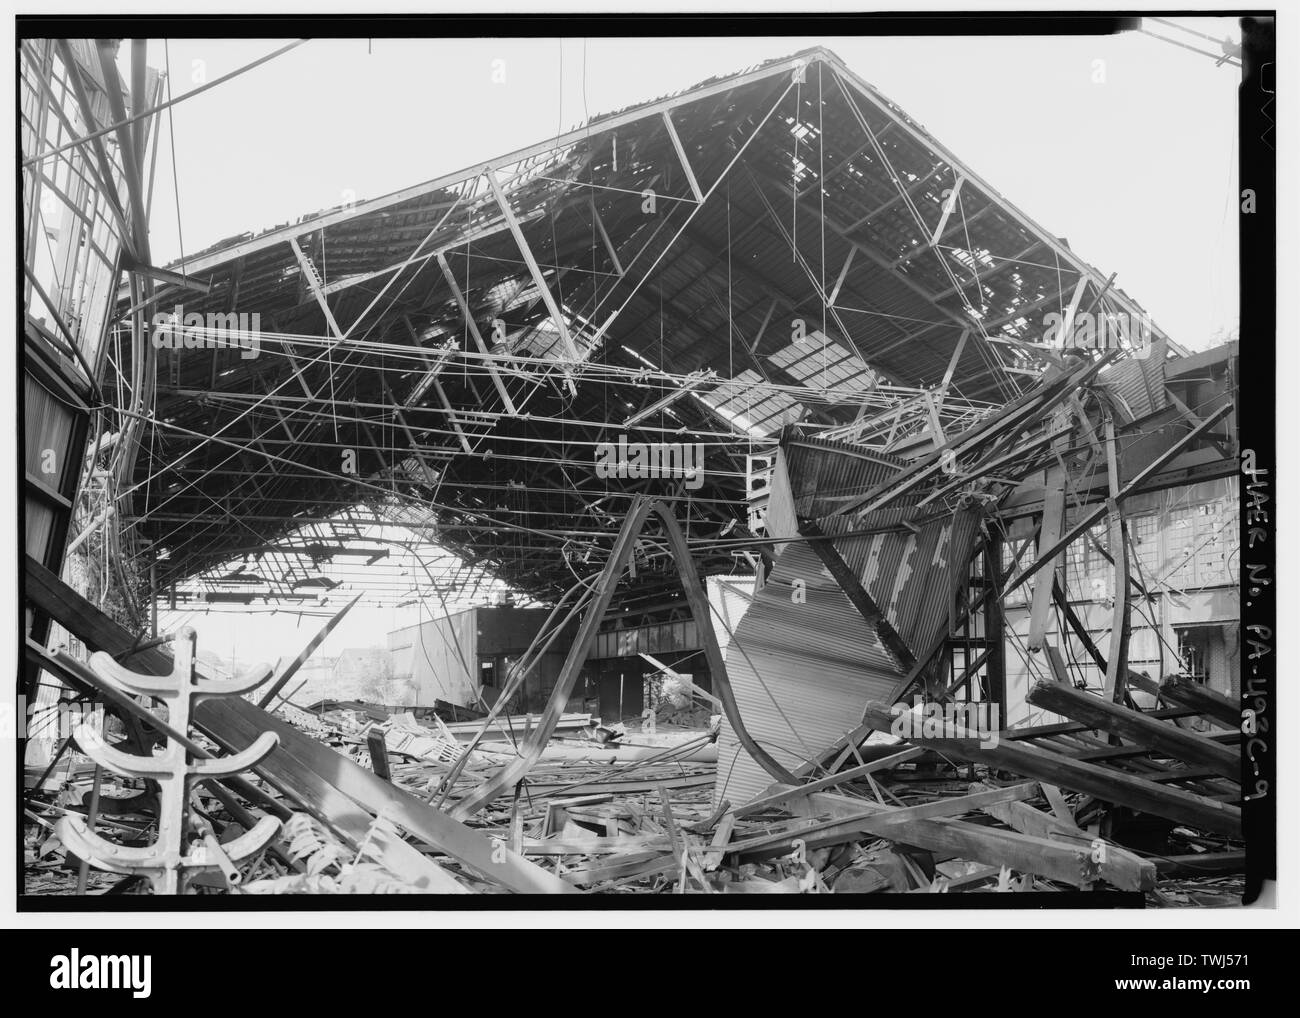 Senseless demolition in progress, showing destruction of perfectly decent and recyclable mill building. Problem exacerbated by high value of scrap iron. - Phoenix Iron Company, Rolling Mill, North of French Creek, west of Fairview Avenue, Phoenixville, Chester County, PA; DeLony, Eric N, project manager; Pennsylvania Department of Transportation, sponsor; Pennsylvania Historical and Museum Commission, sponsor; Lowe, Jet, photographer - Stock Image